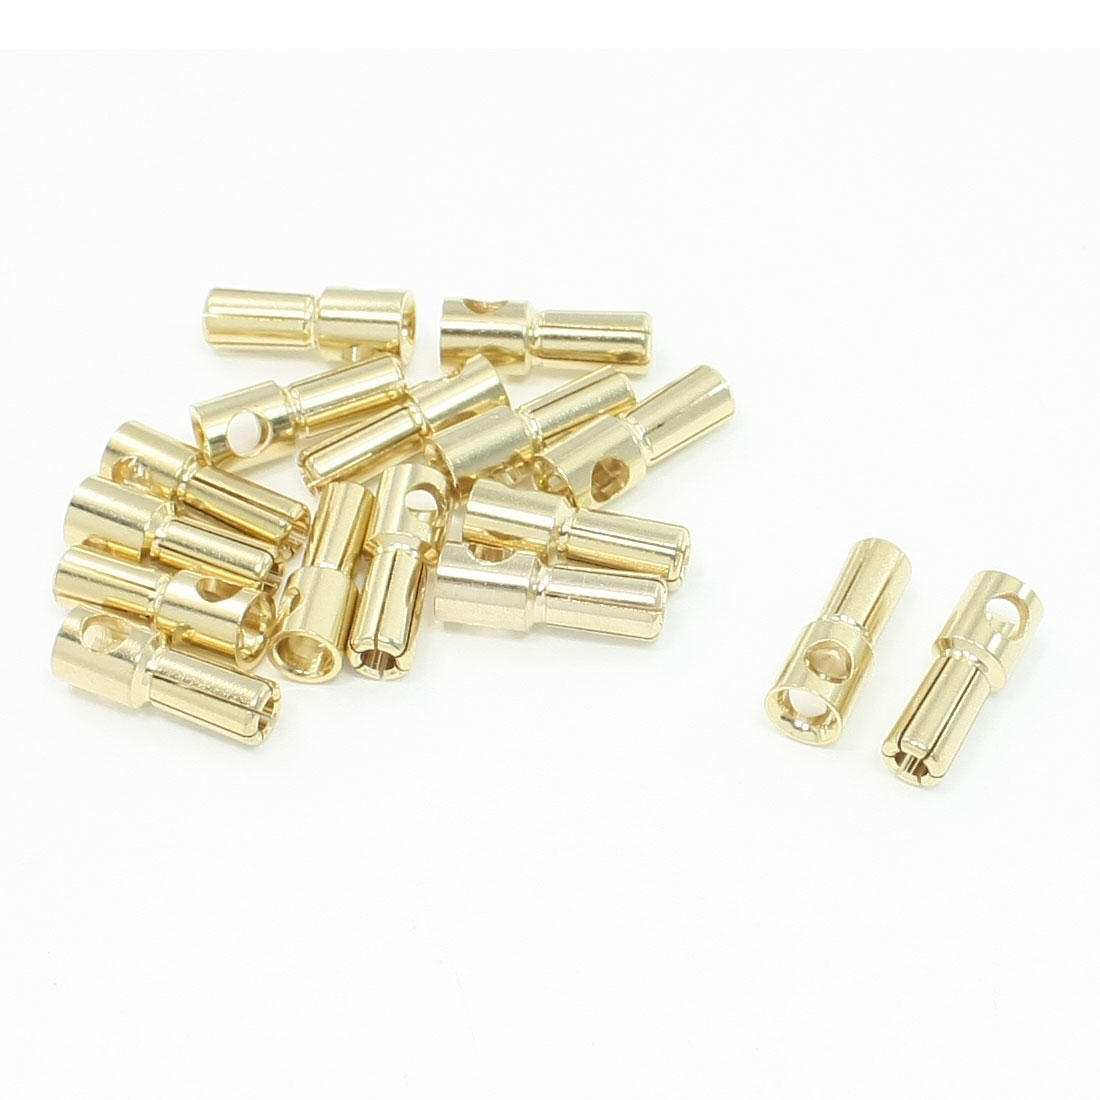 5.5mm Inside Dia Male Banana Plug Cone Connector Replacement 20 Pcs